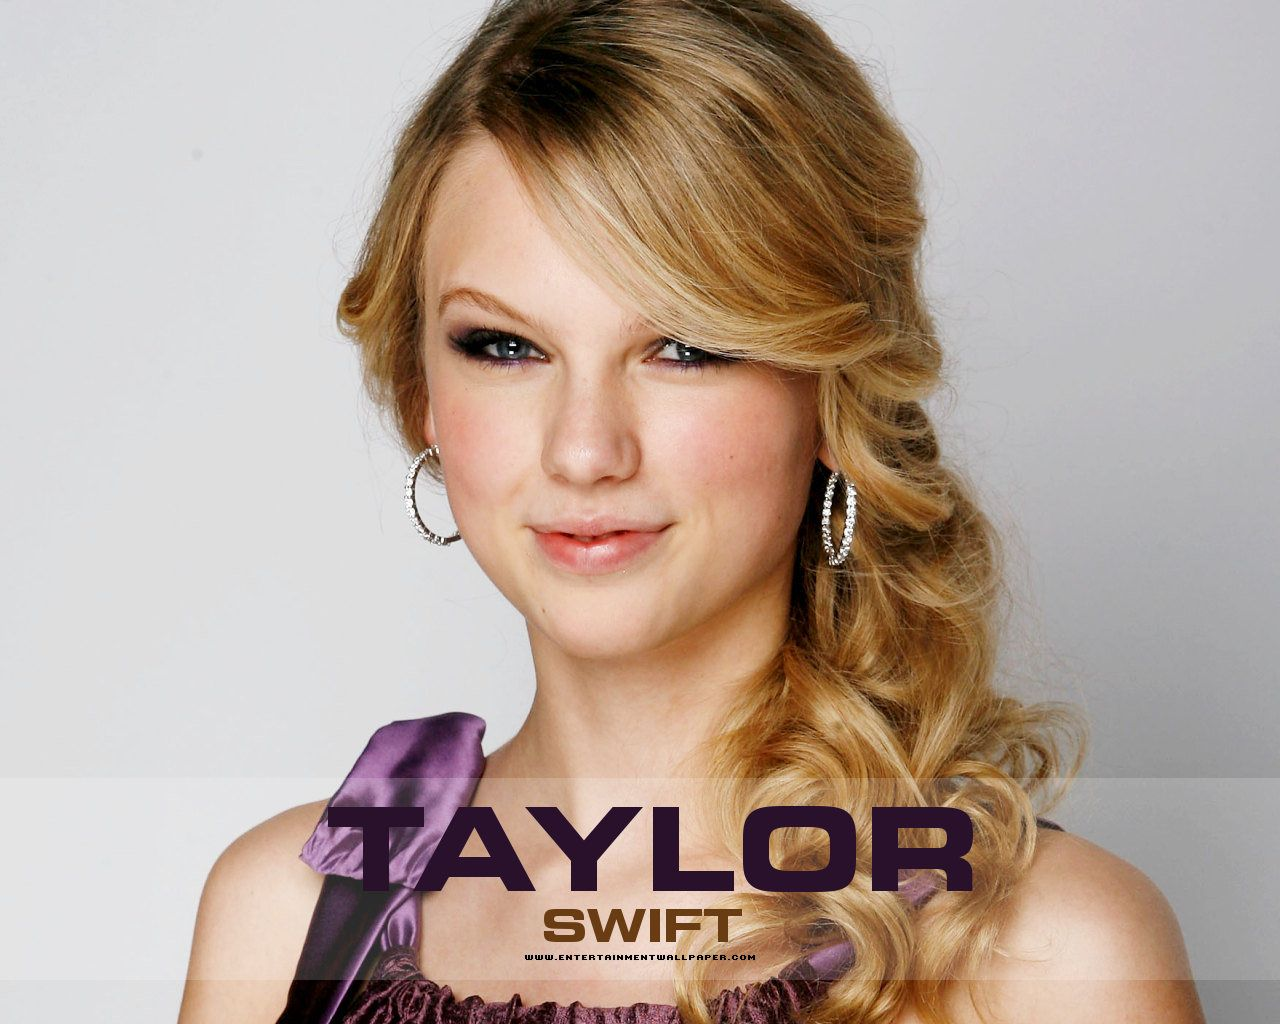 Taylor swift 2014 pictures wallpapers pc free download places taylor swift 2014 pictures wallpapers pc free download places to visit pinterest taylor swift 2014 voltagebd Gallery